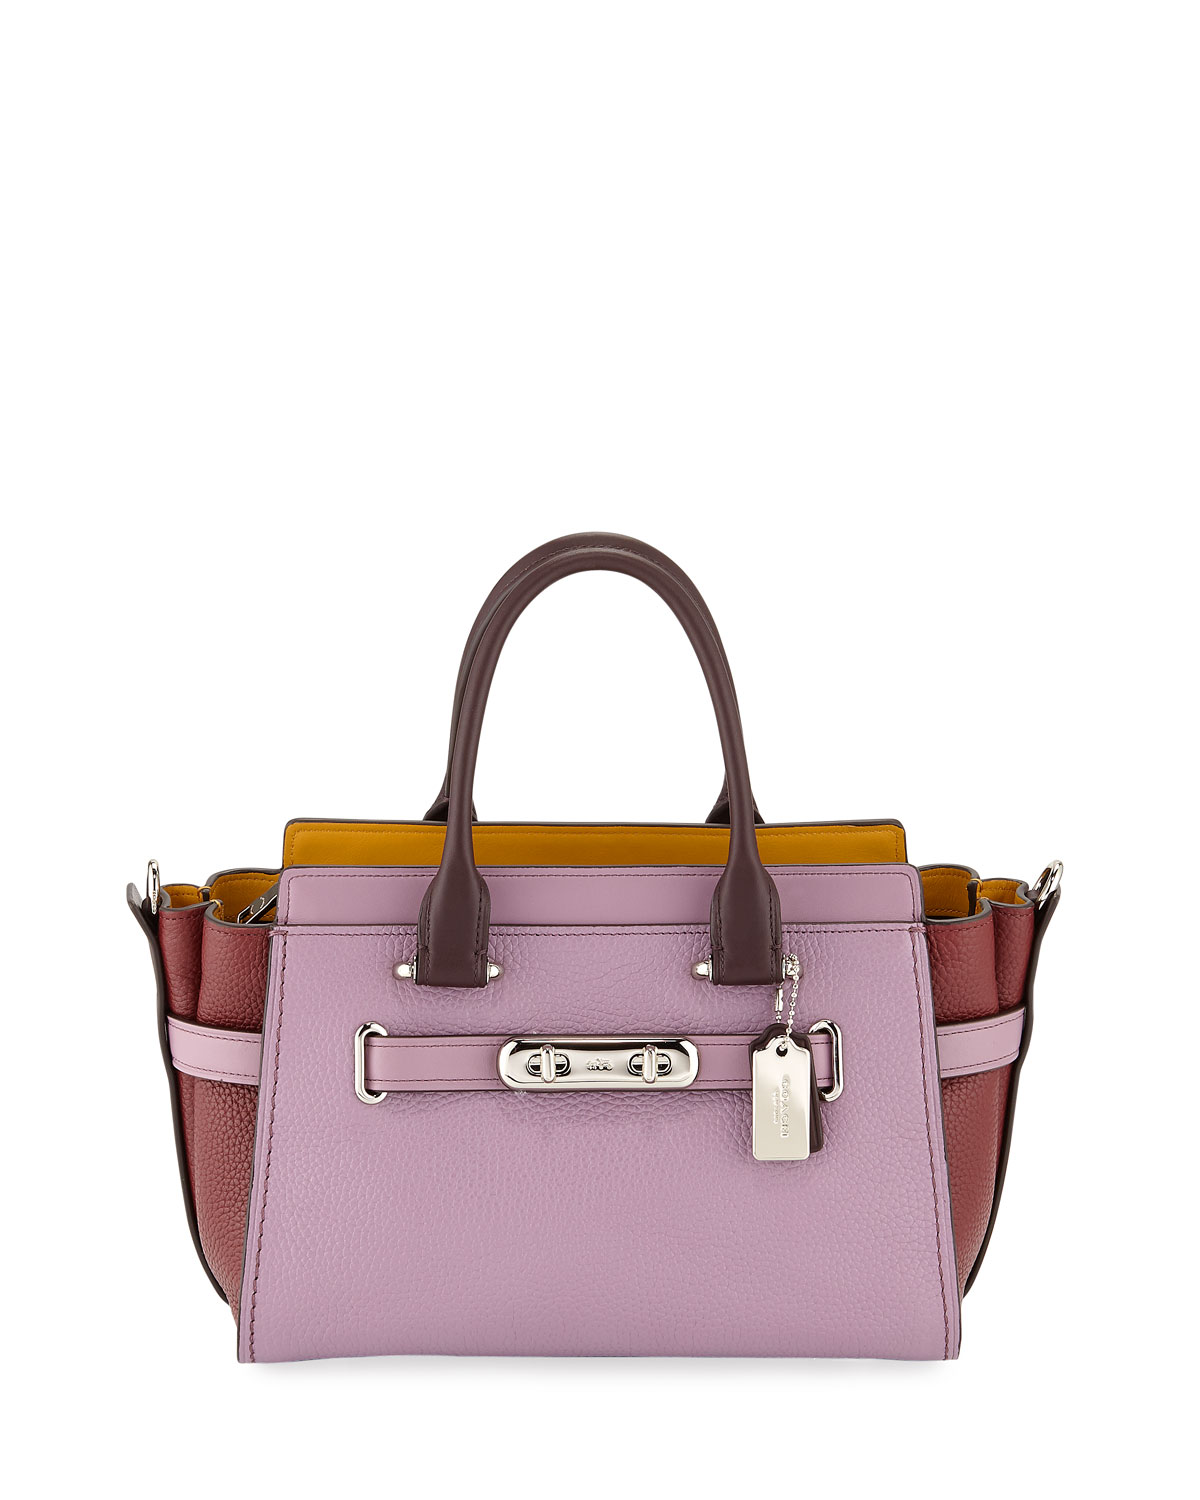 11386e7c091fc Coach 1941 Swagger 27 Colorblock Pebbled Leather Tote Bag